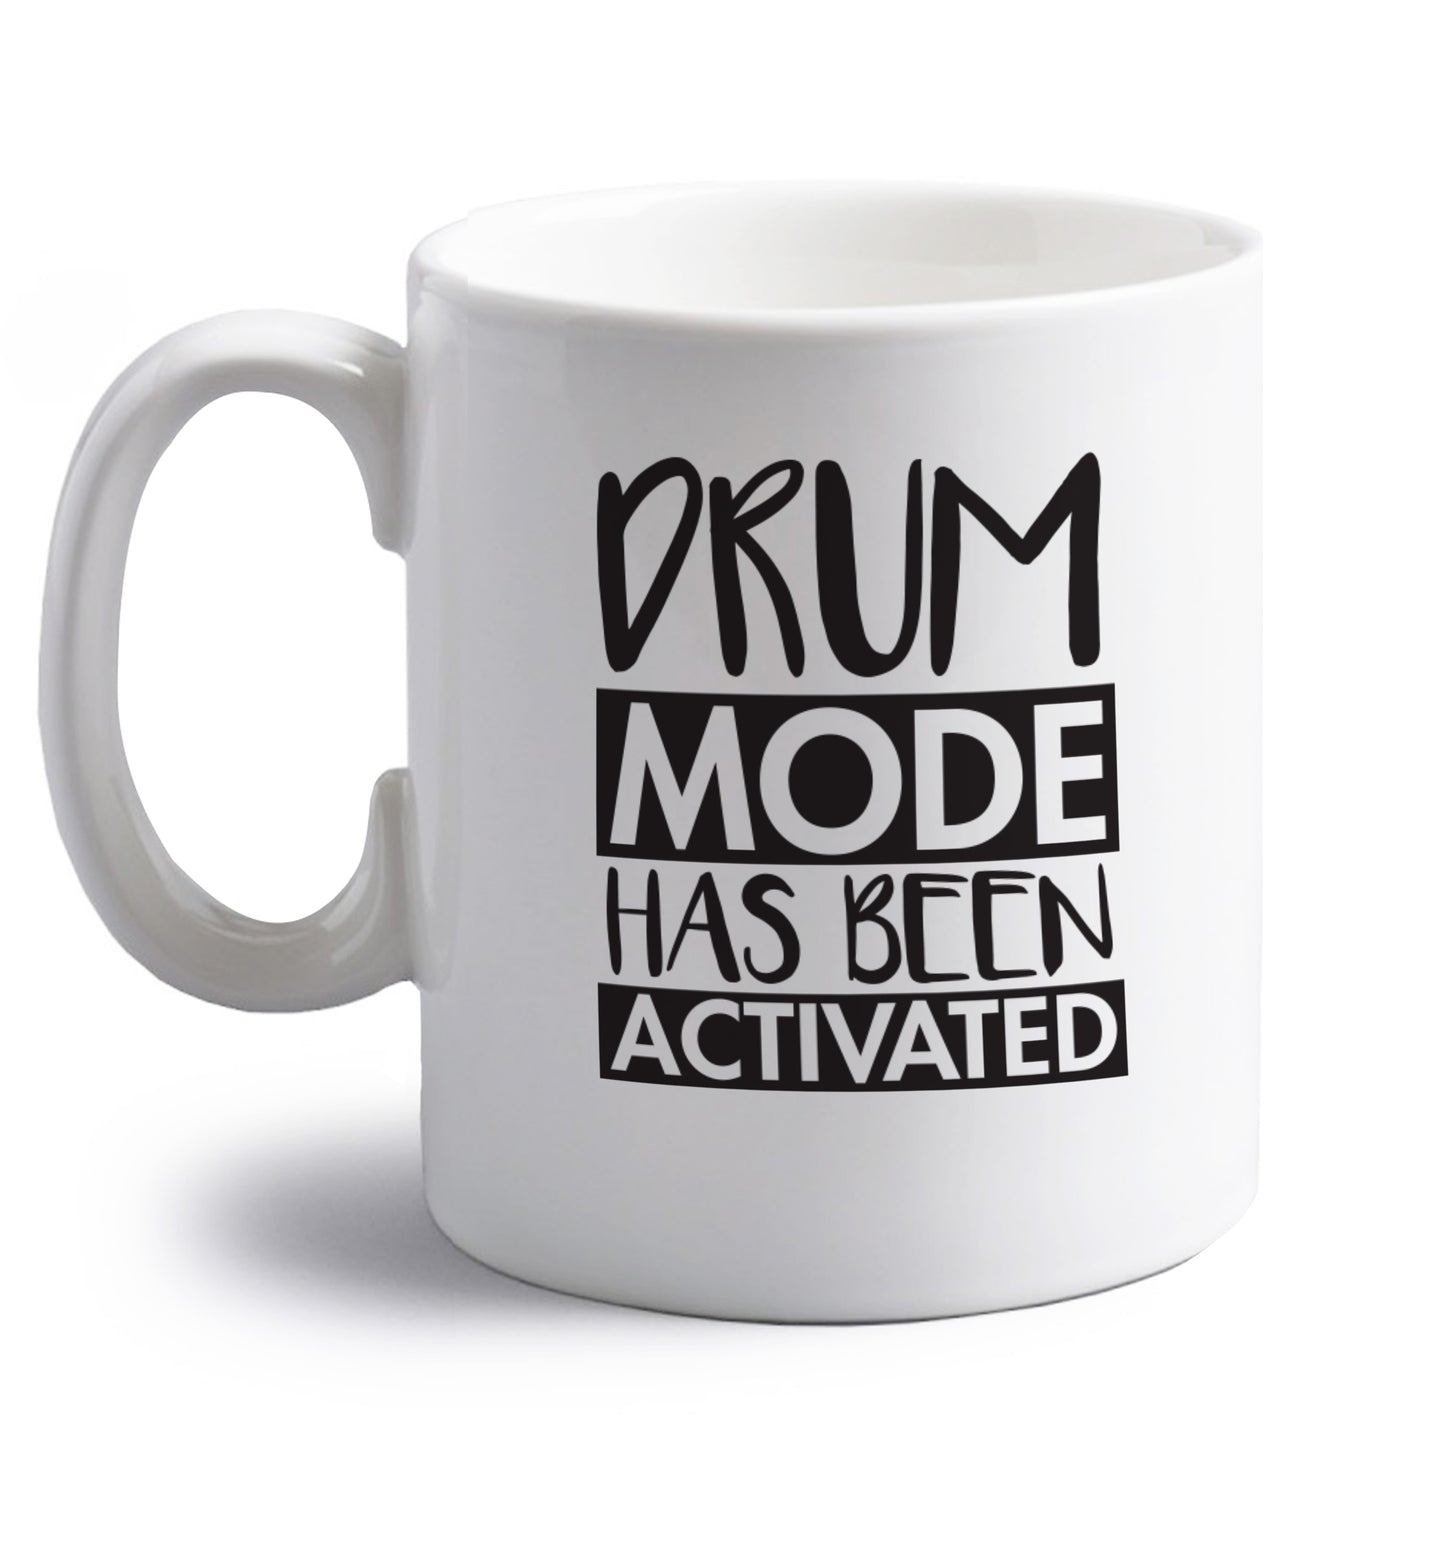 Drum mode activated right handed white ceramic mug